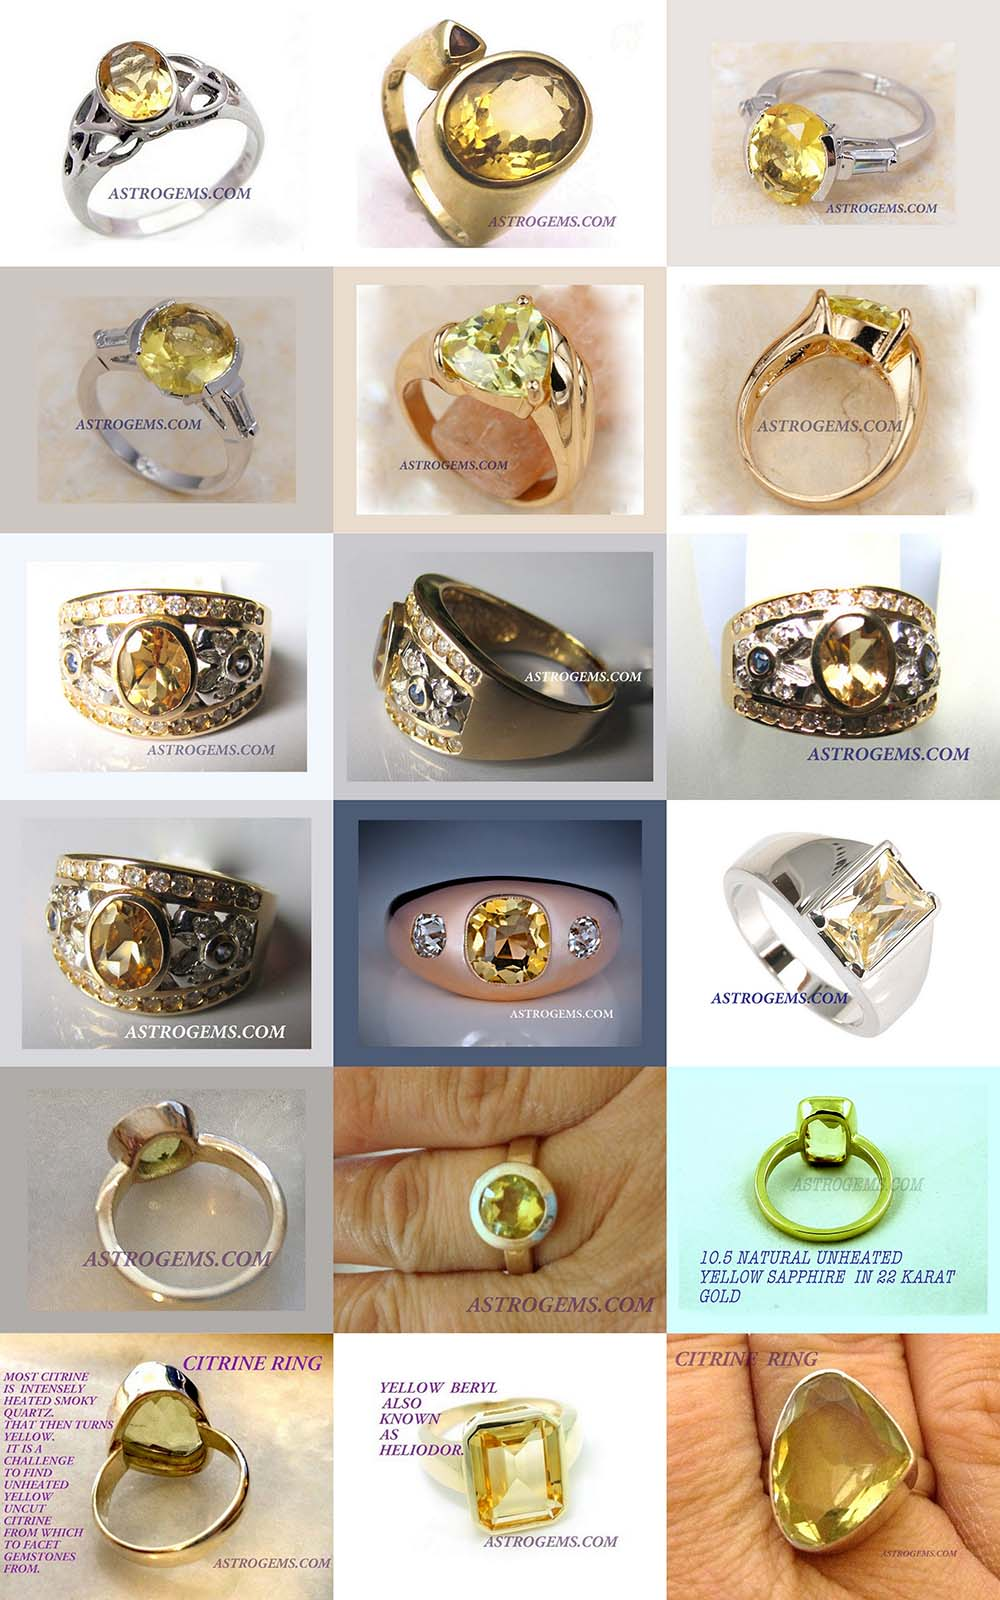 Astrogems can make custom astrological Yellow Sapphire rings.